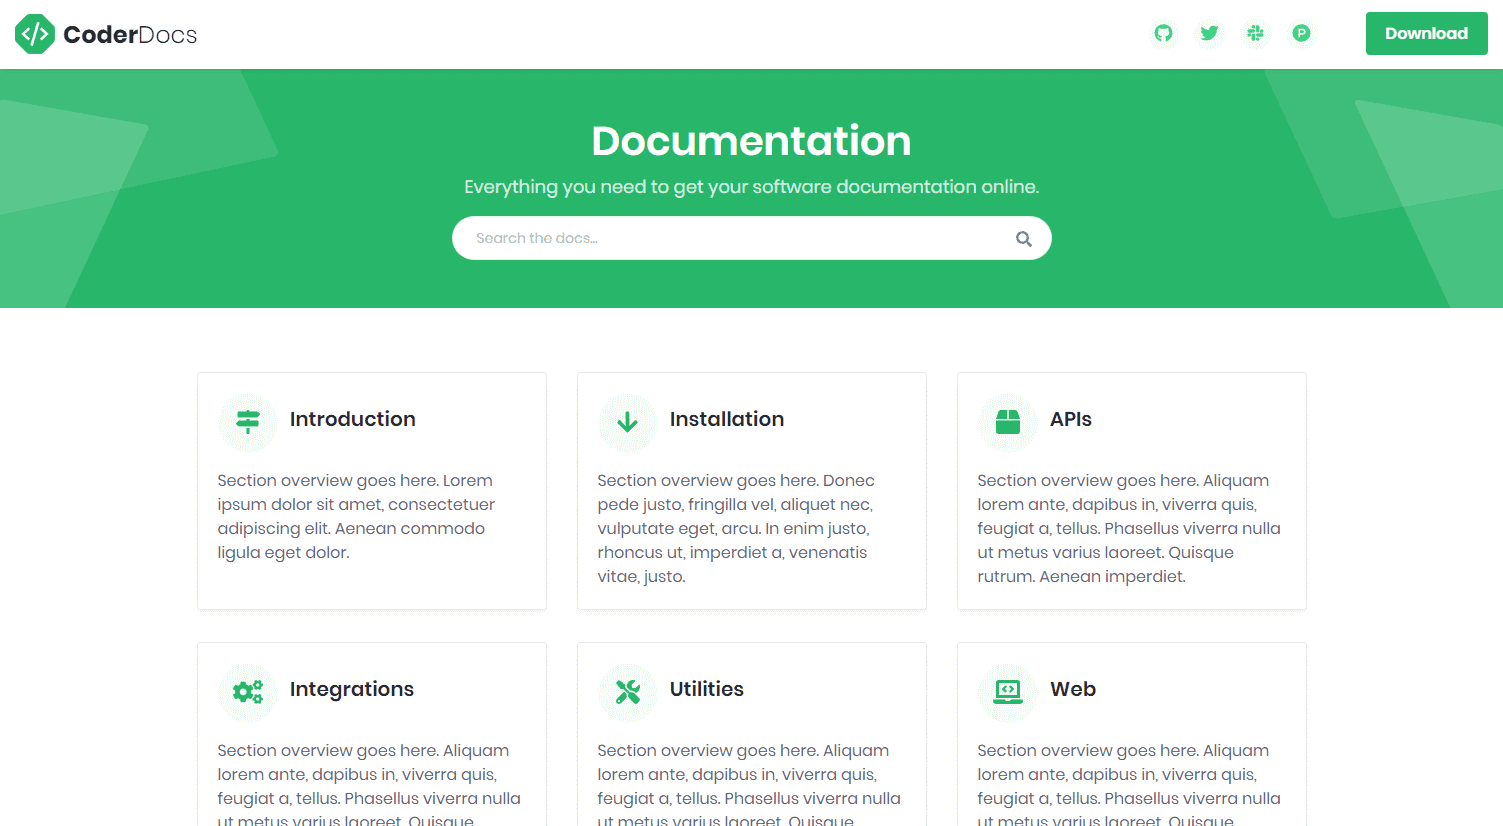 CoderDocs: A Free Bootstrap 4 Documentation Template For Software Projects